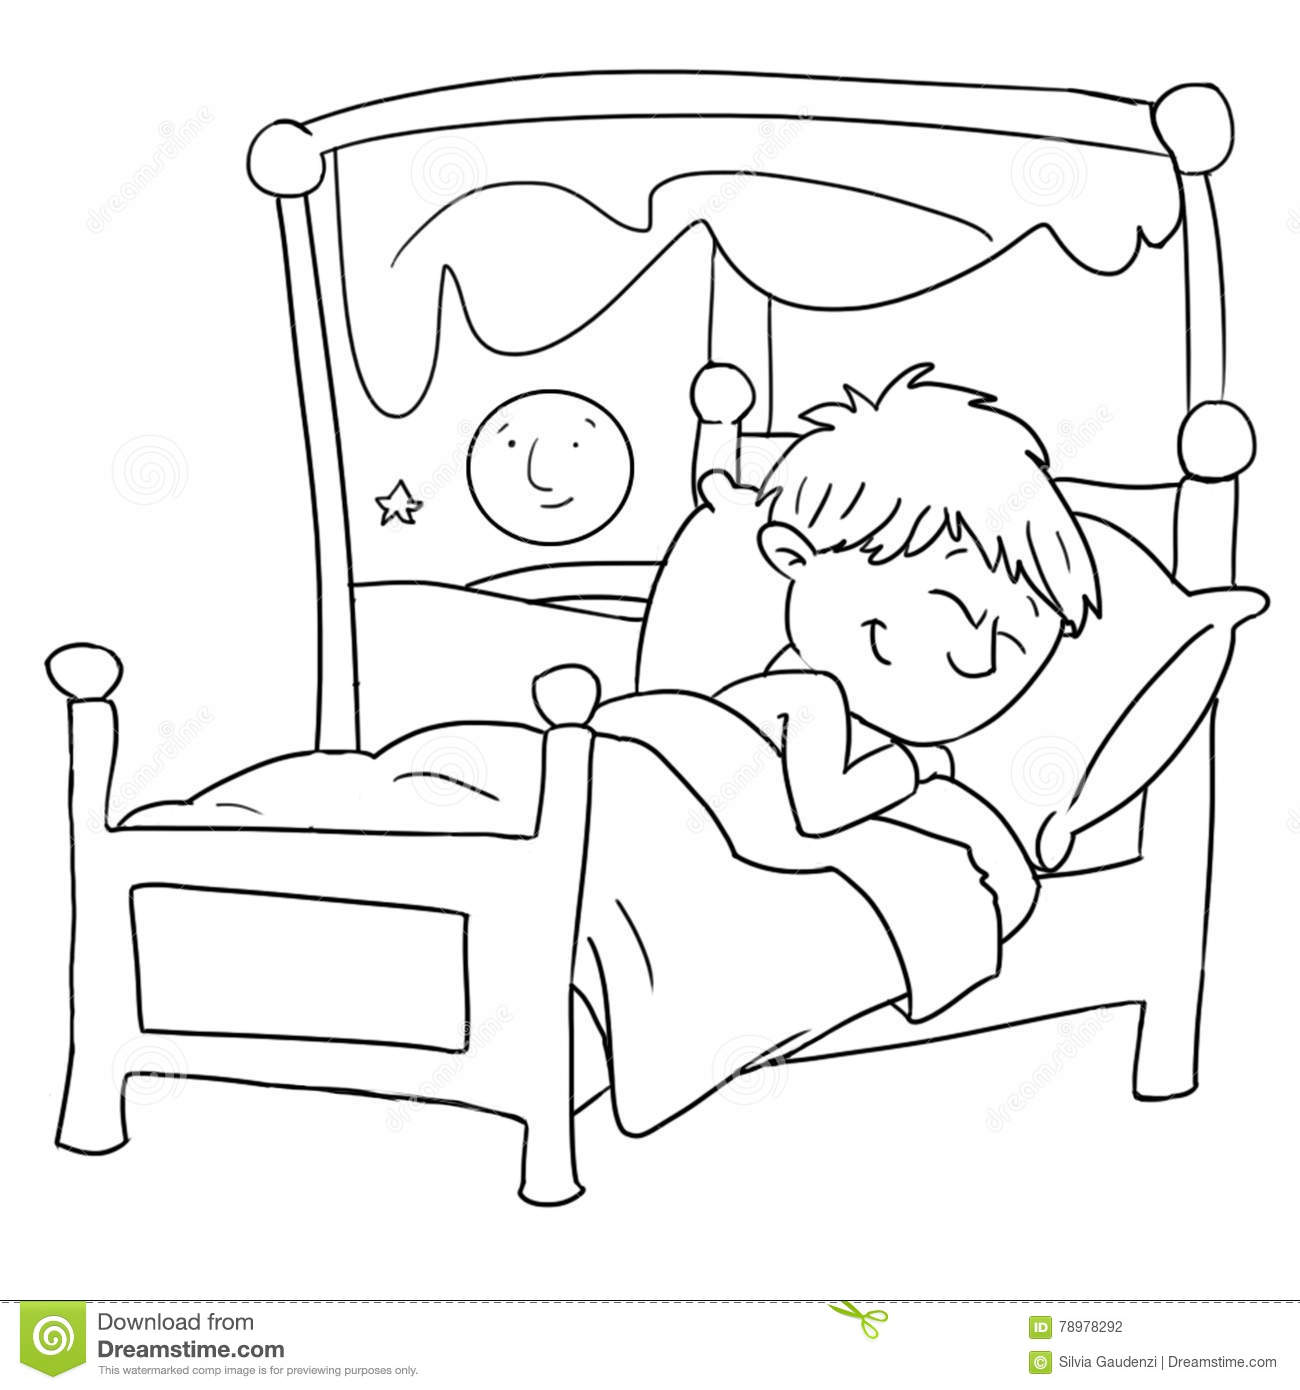 The Baby Is Sleeping In Her Bed Chine Drawn By Color Stock